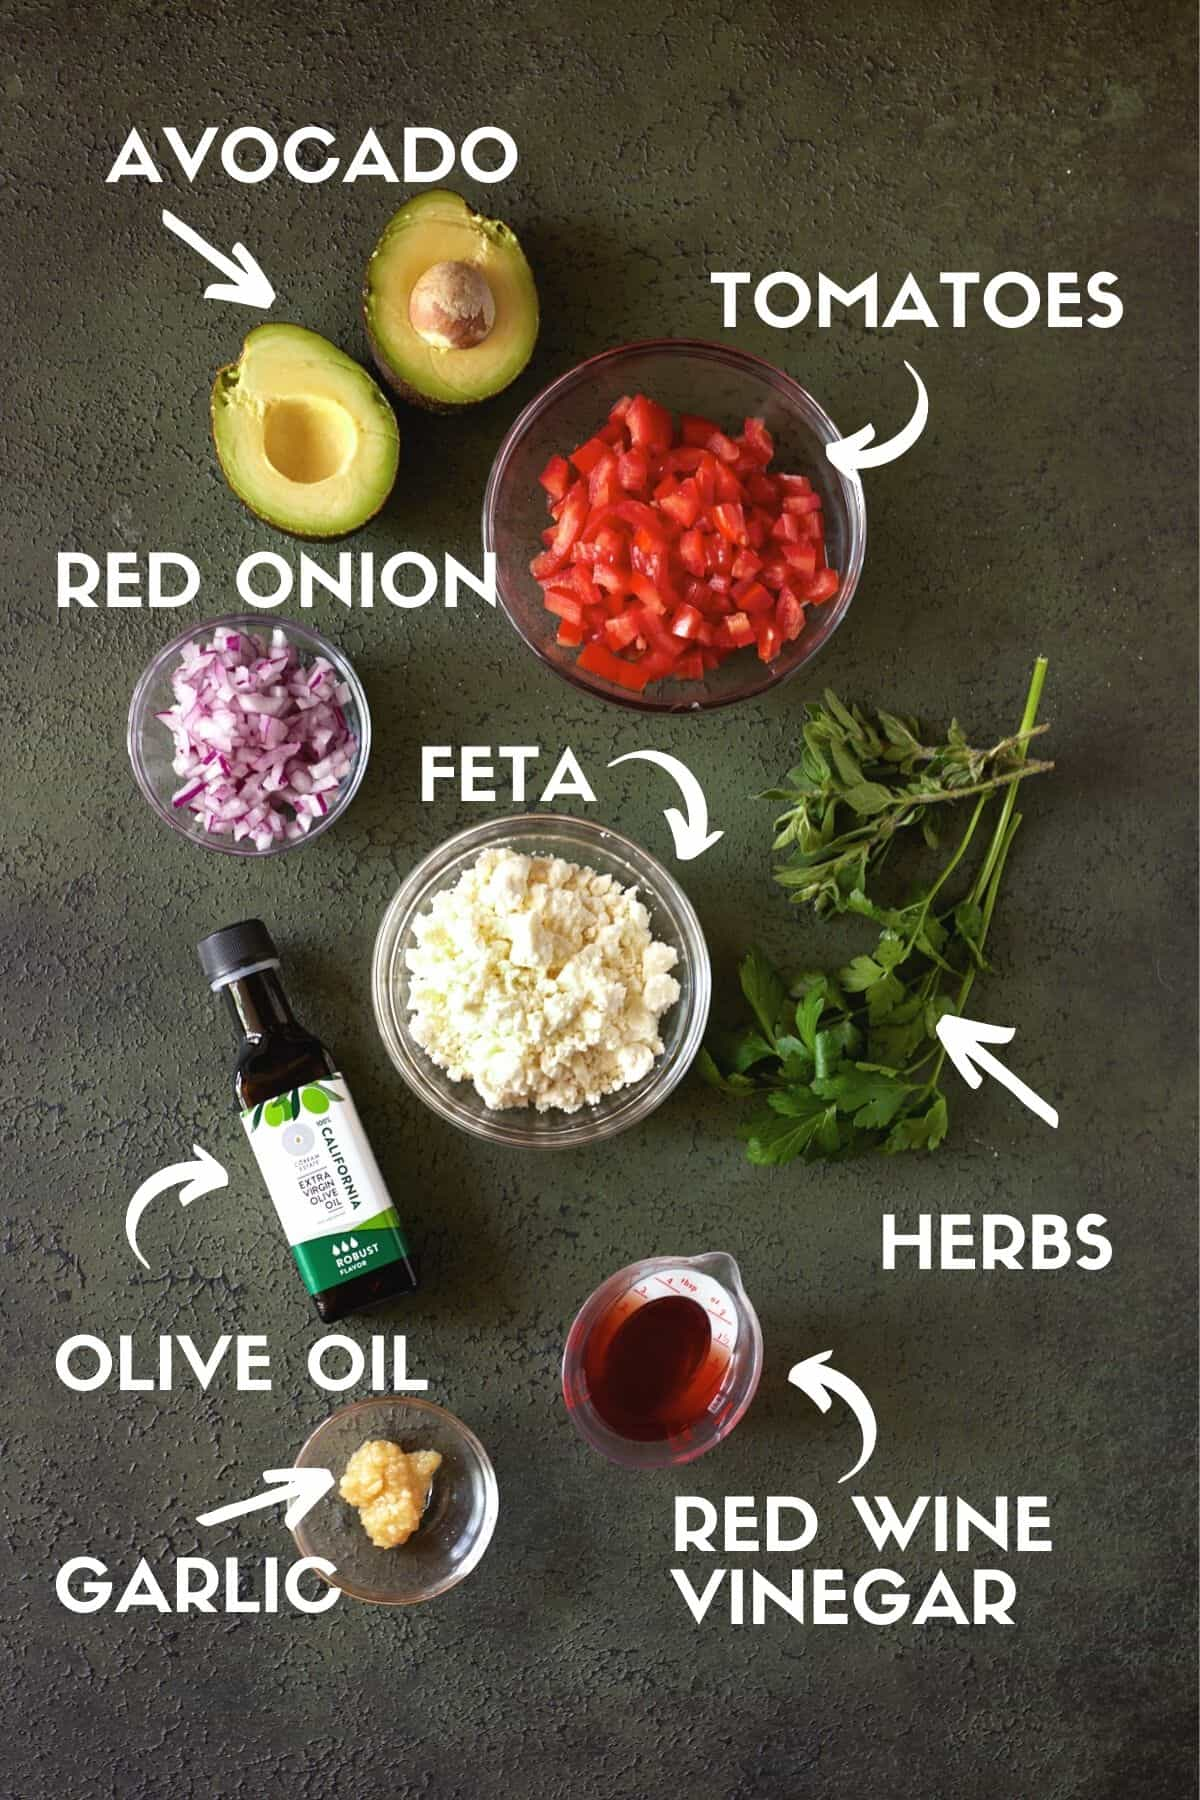 Ingredients for Avocado salsa.